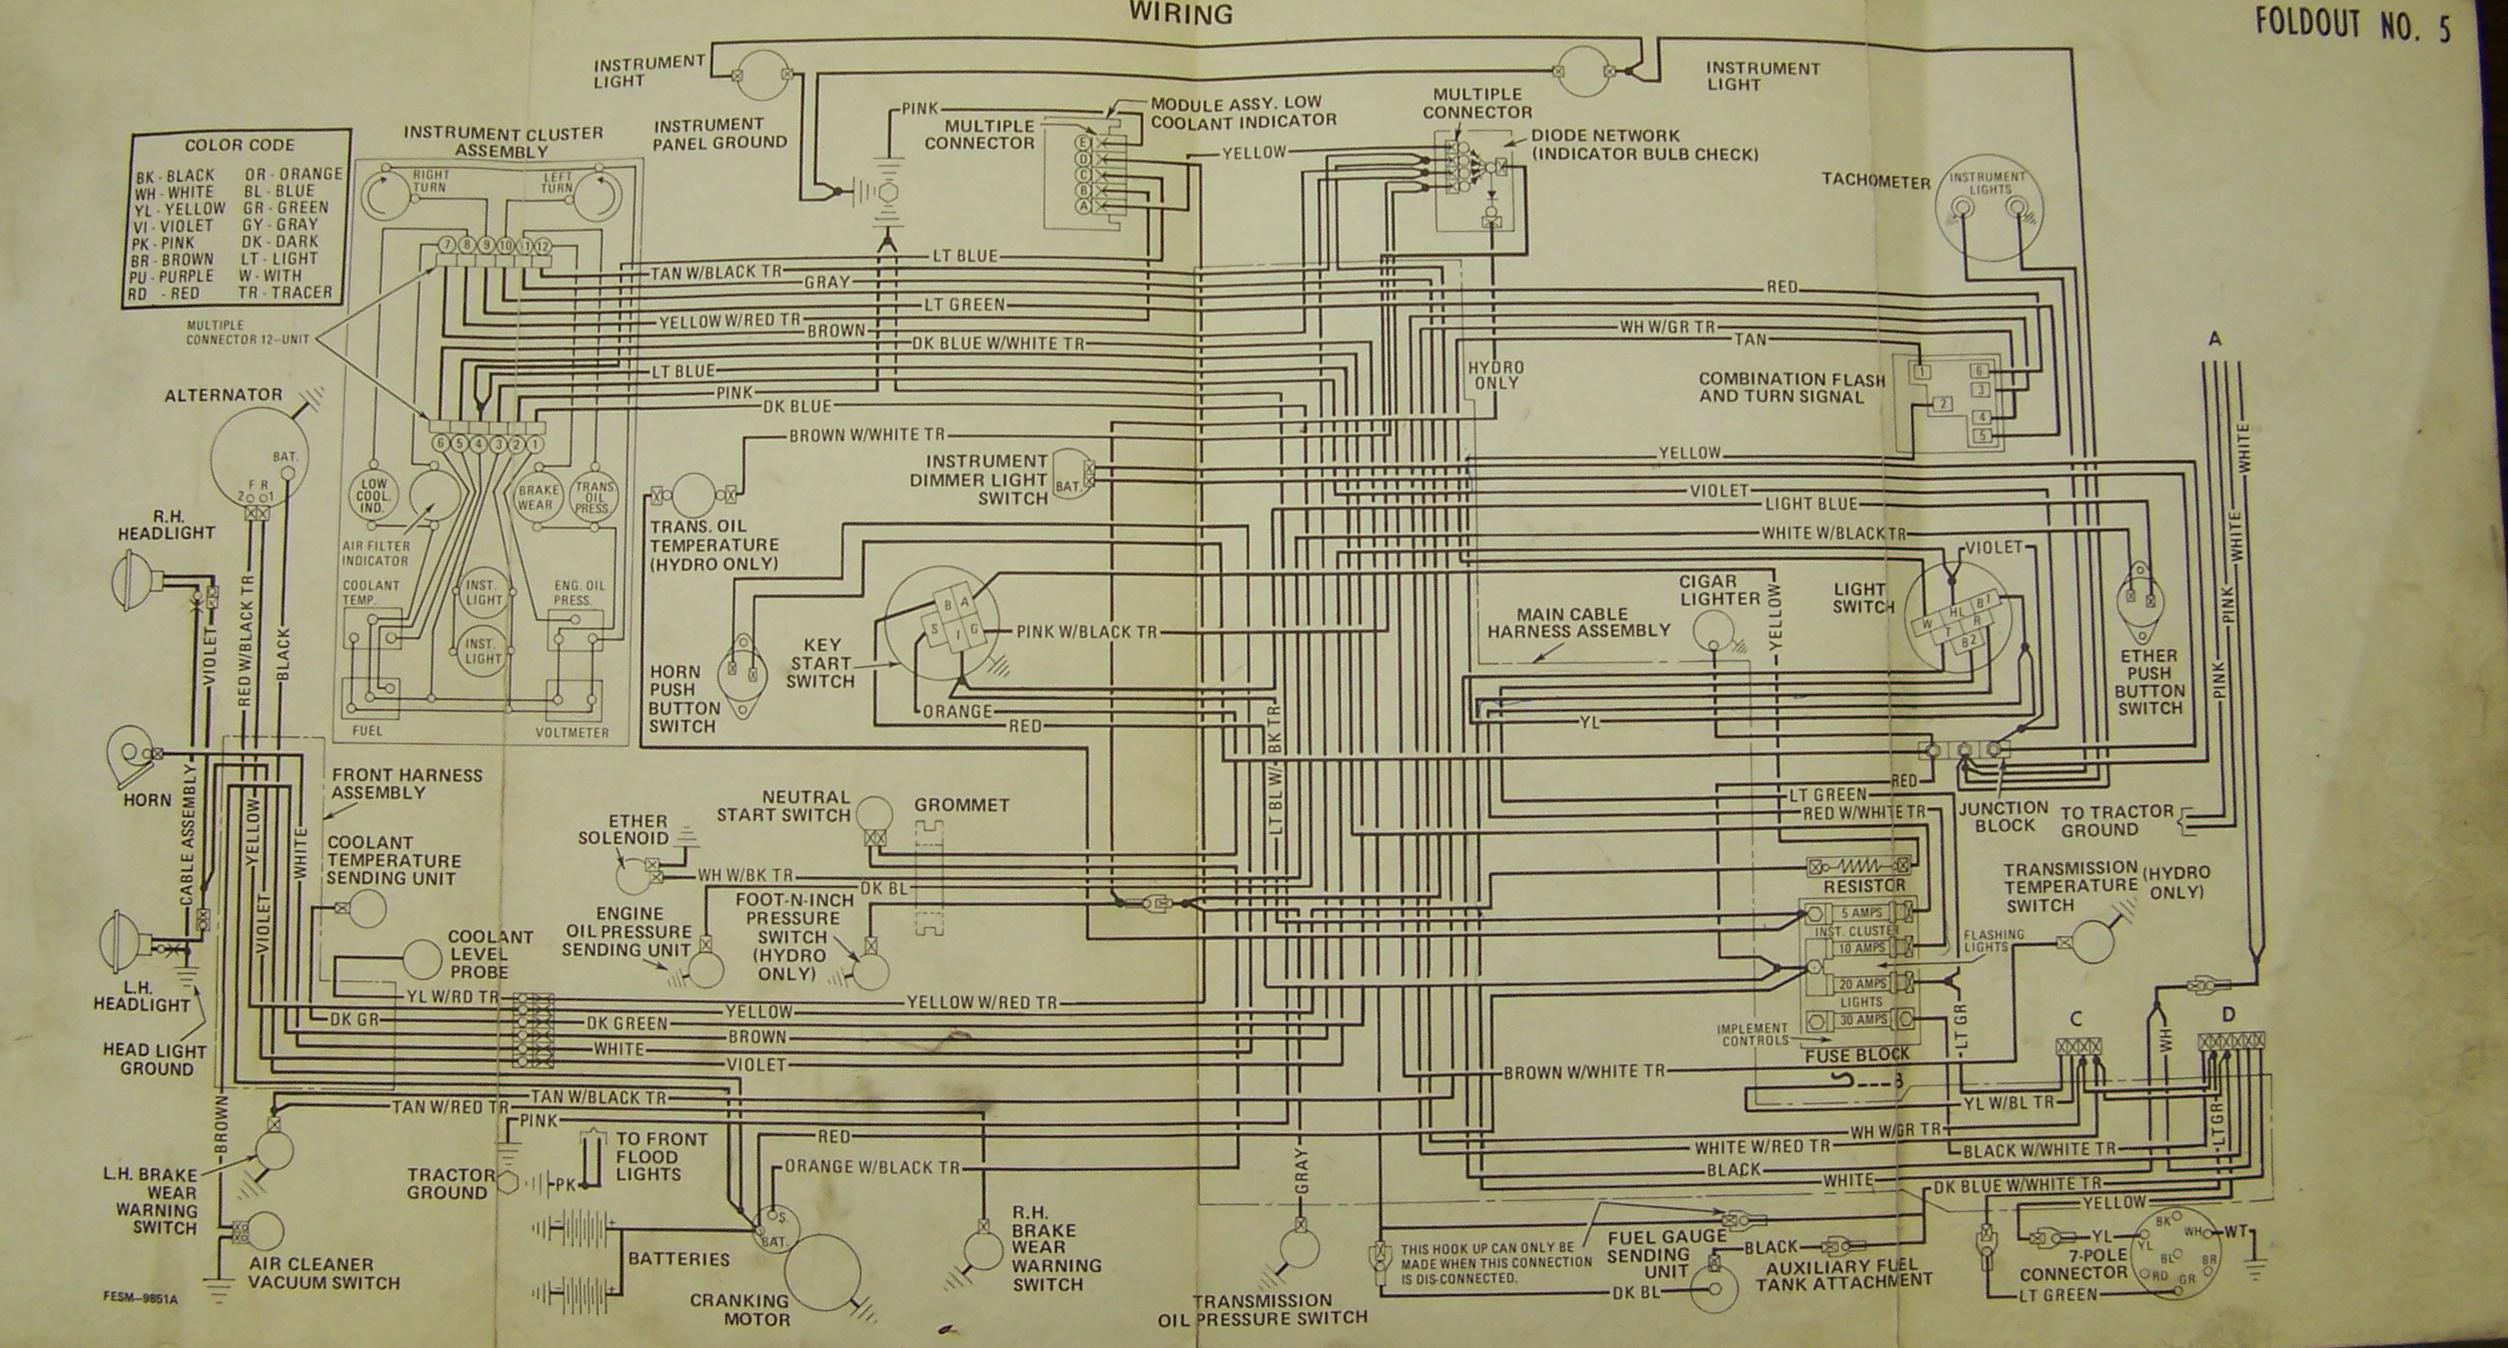 carter & gruenewald co. inc. - ih-farmall tractor electrical wiring diagrams  carter & gruenewald